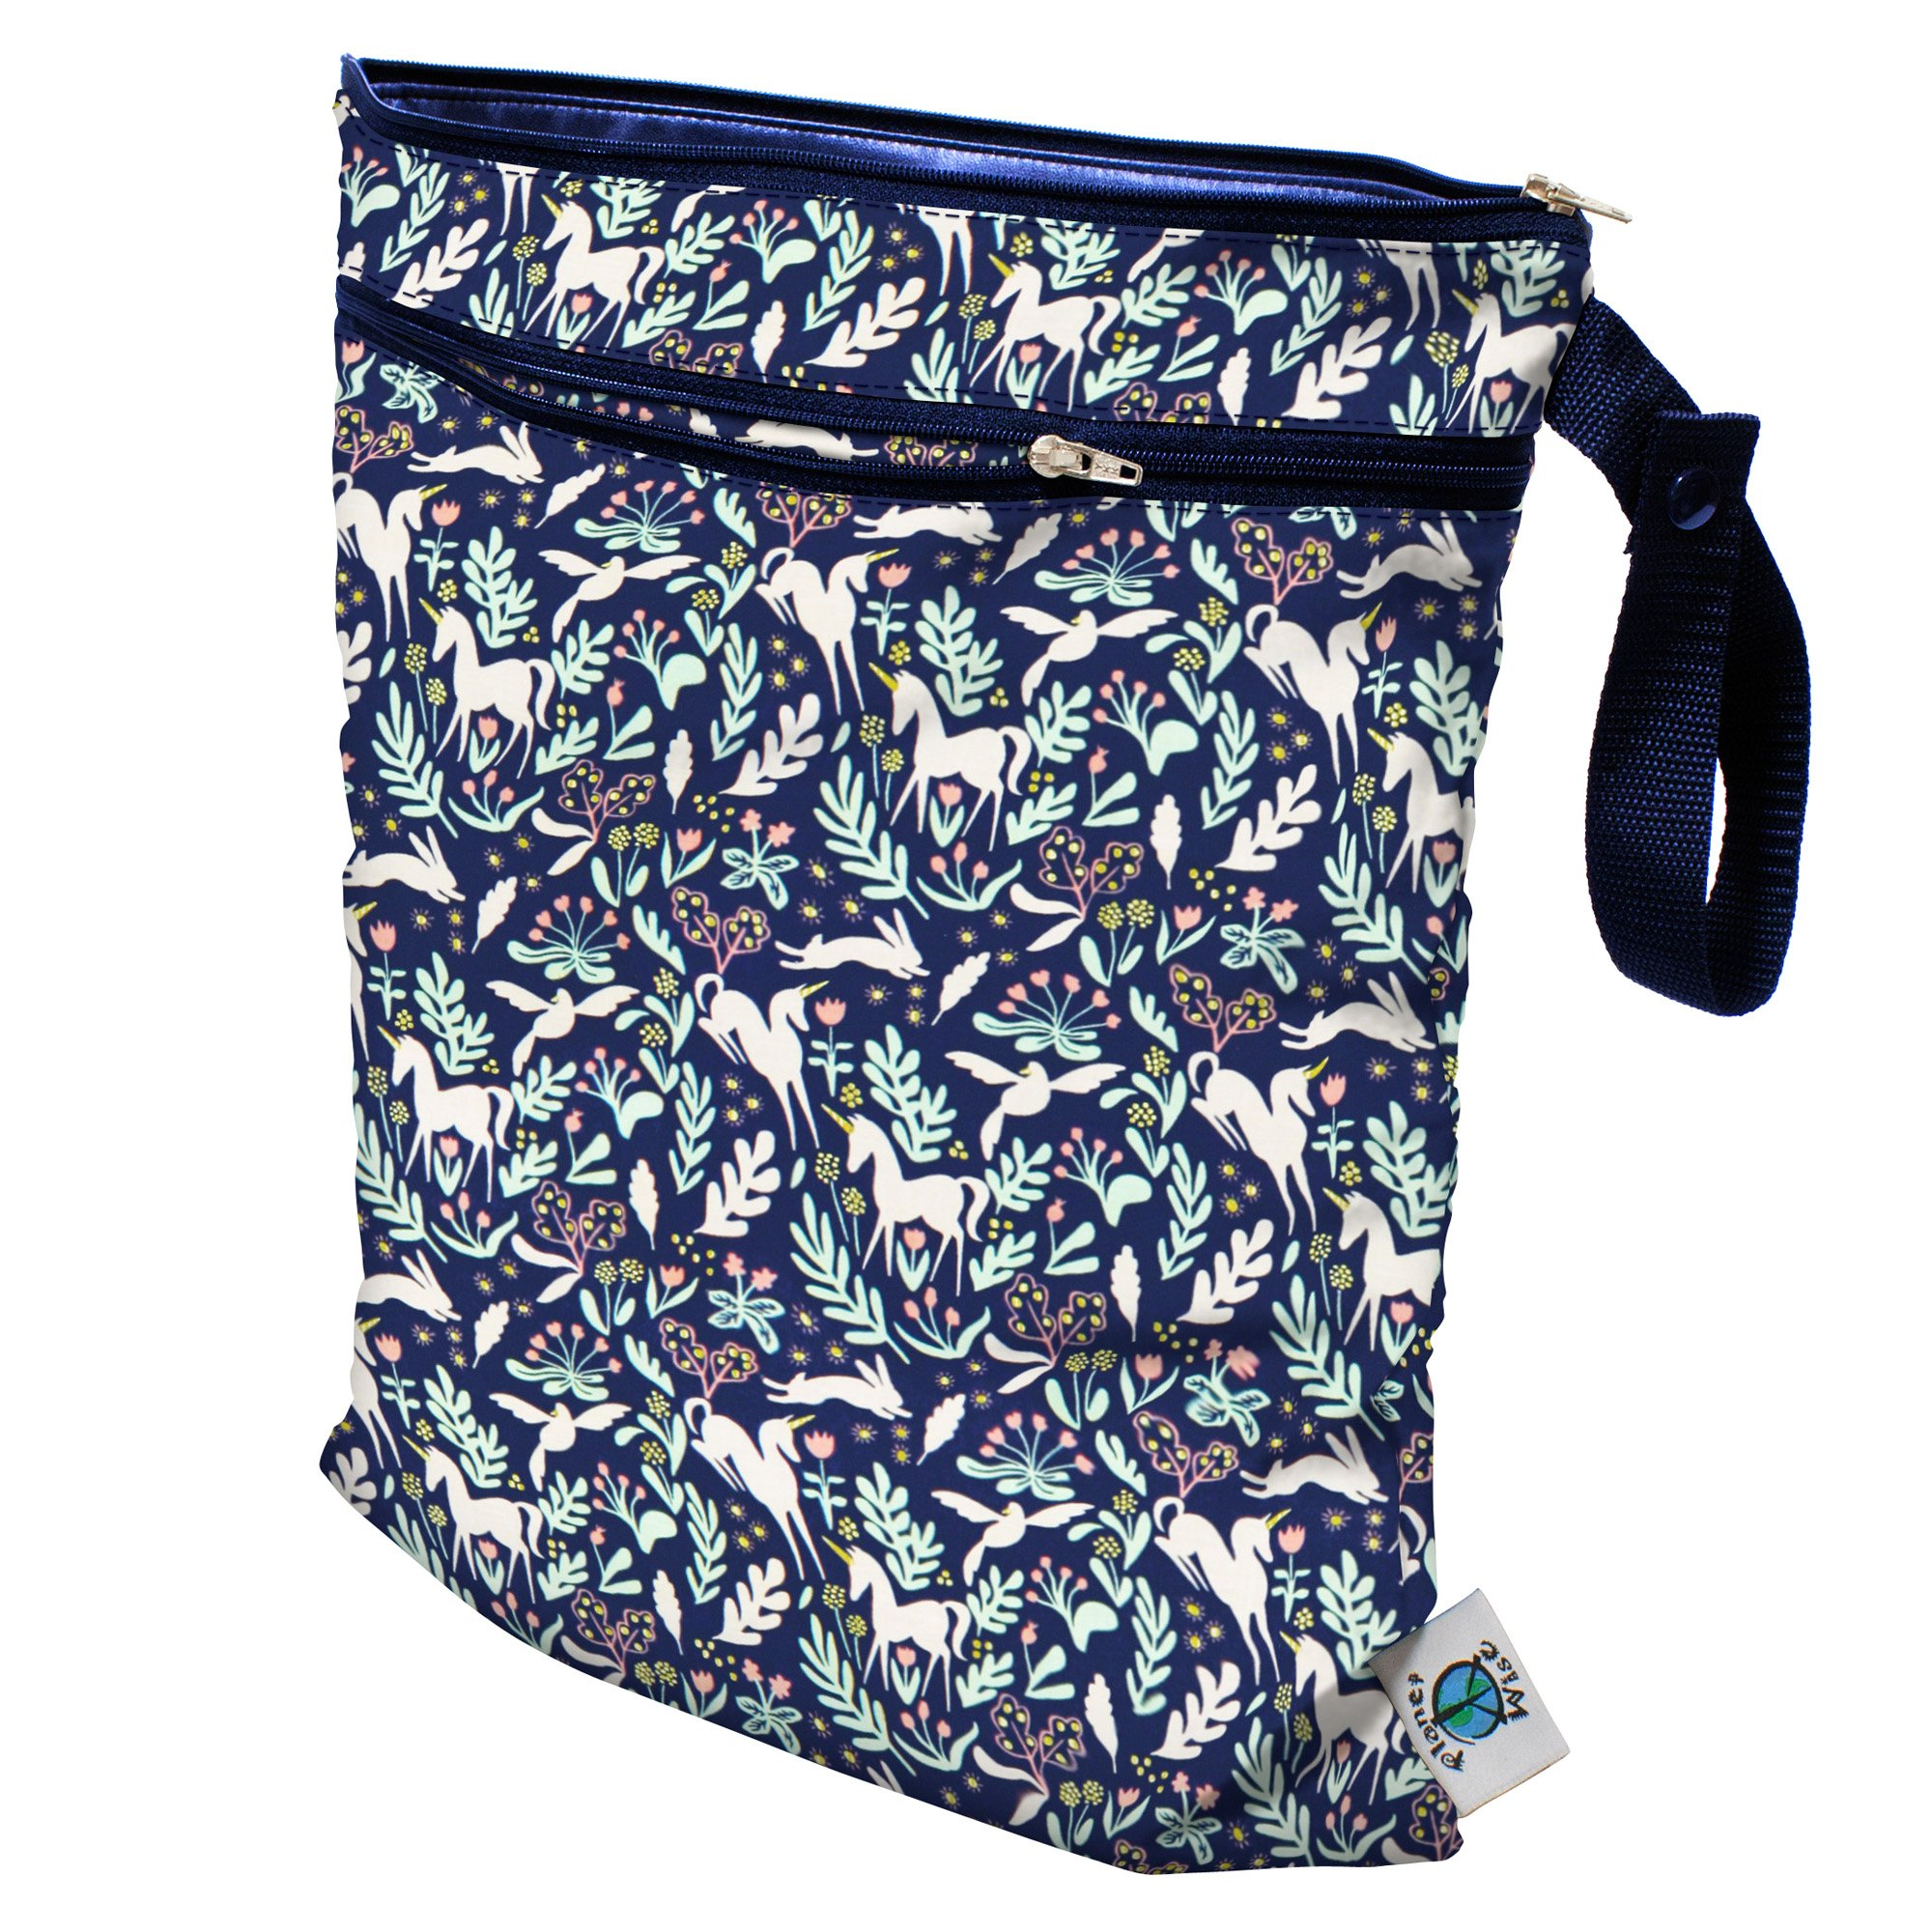 Planet Wise Wet/Dry Bag, Enchanted Unicorns, Made in The USA